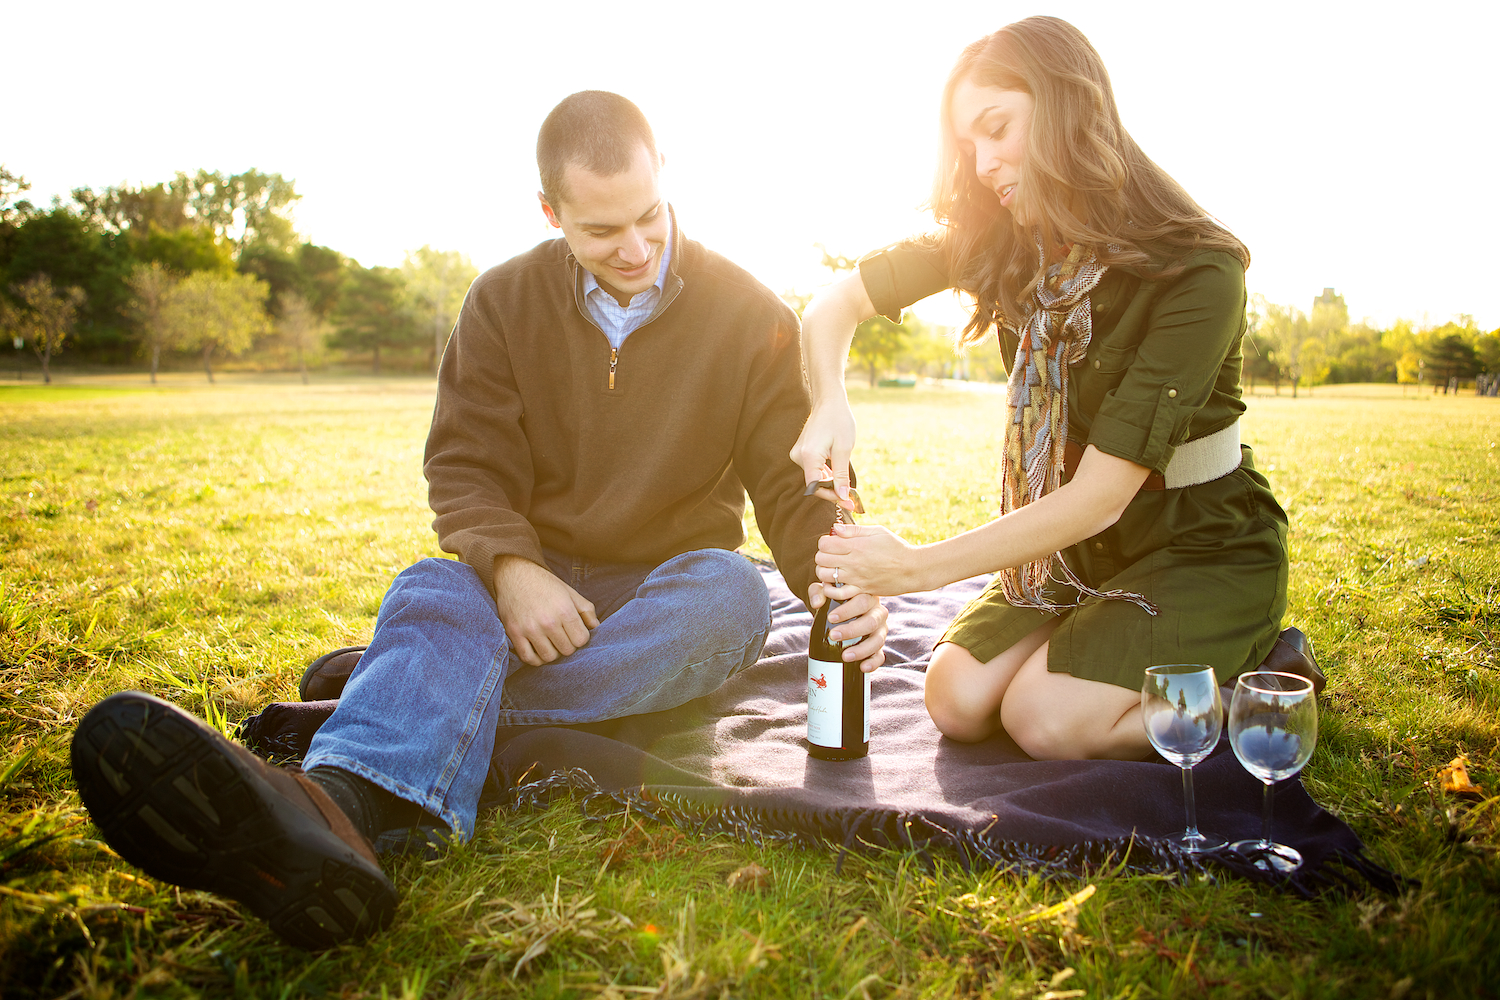 kelsey, taylor, Minneapolis, downtown, Minnesota, blanket, wine, engagement session, faire, boat, woods, nature, wine glasses, wine in the morning, love, engaged